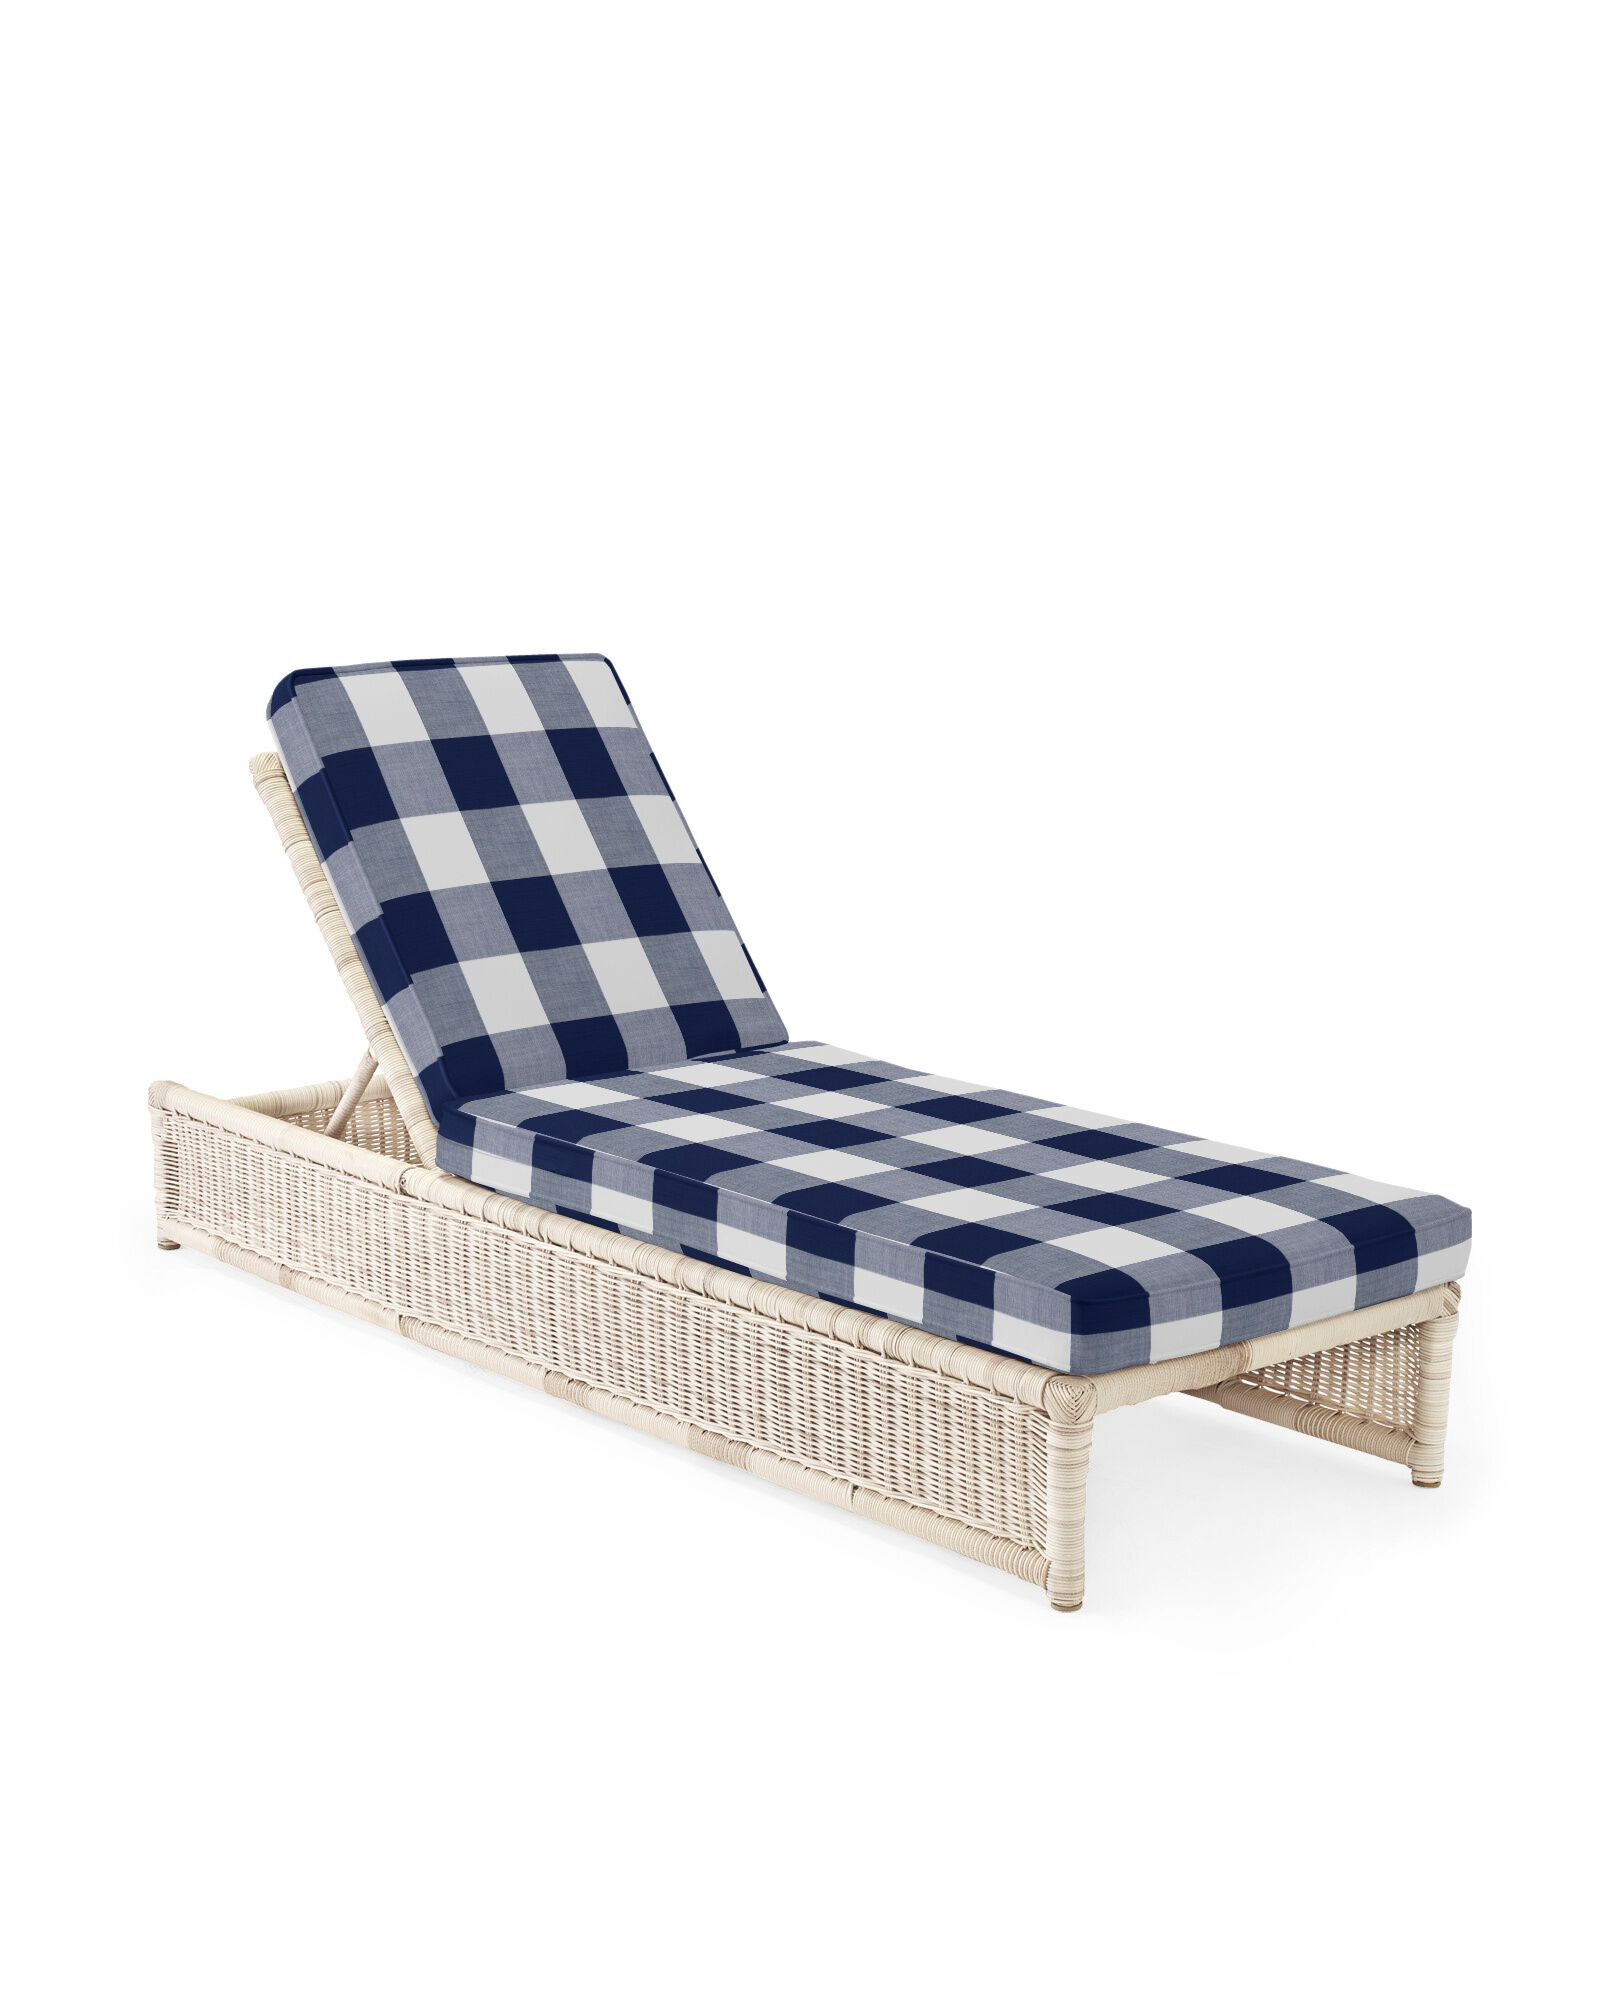 Cushion Cover for Pacifica Chaise, Perennials Gingham Navy